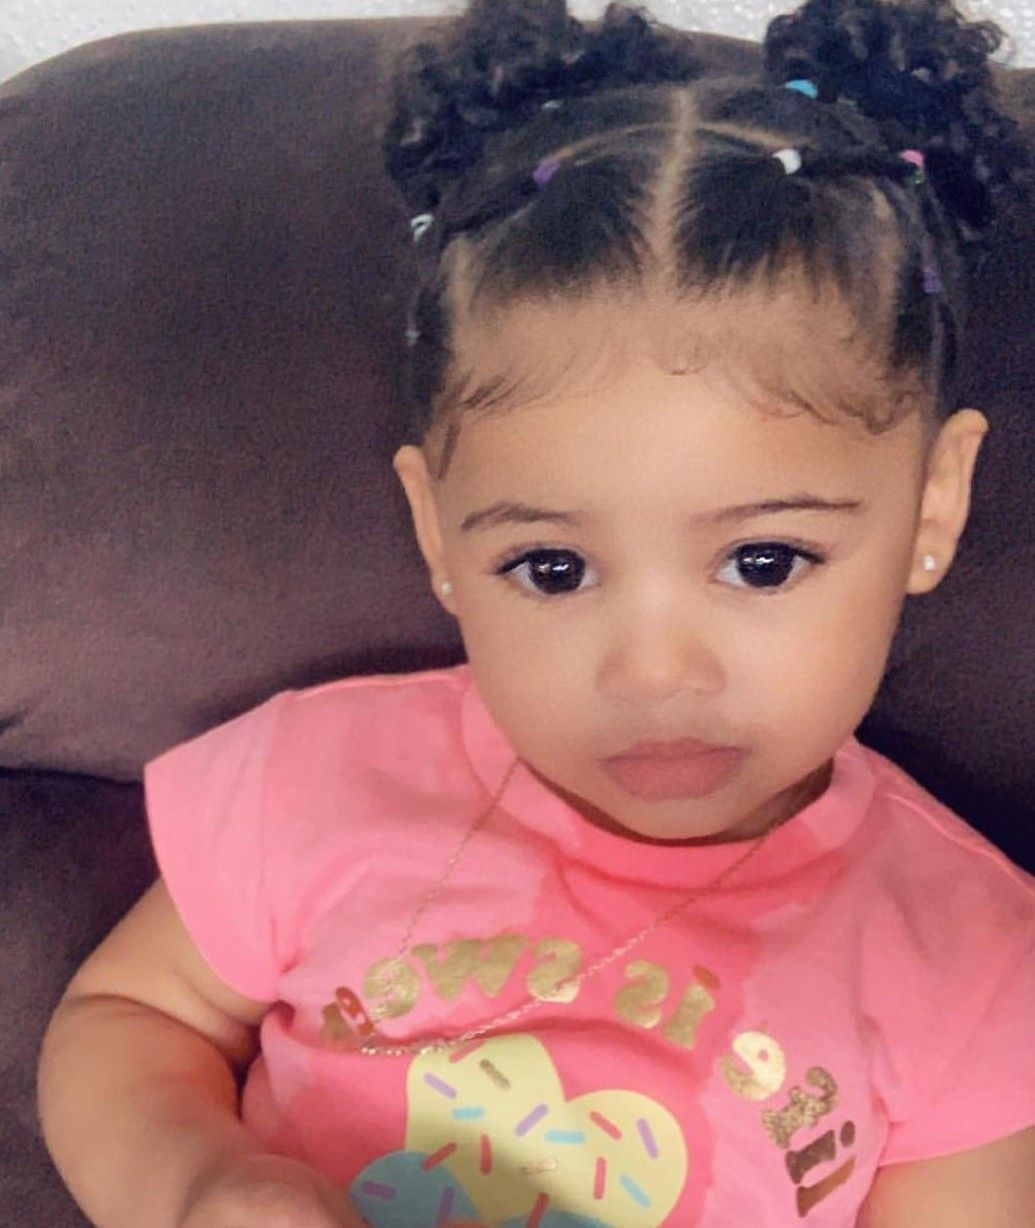 Babygirlhairstyles Black Baby Girl Hairstyles Lil Girl Hairstyles Baby Girl Hairstyles Curly